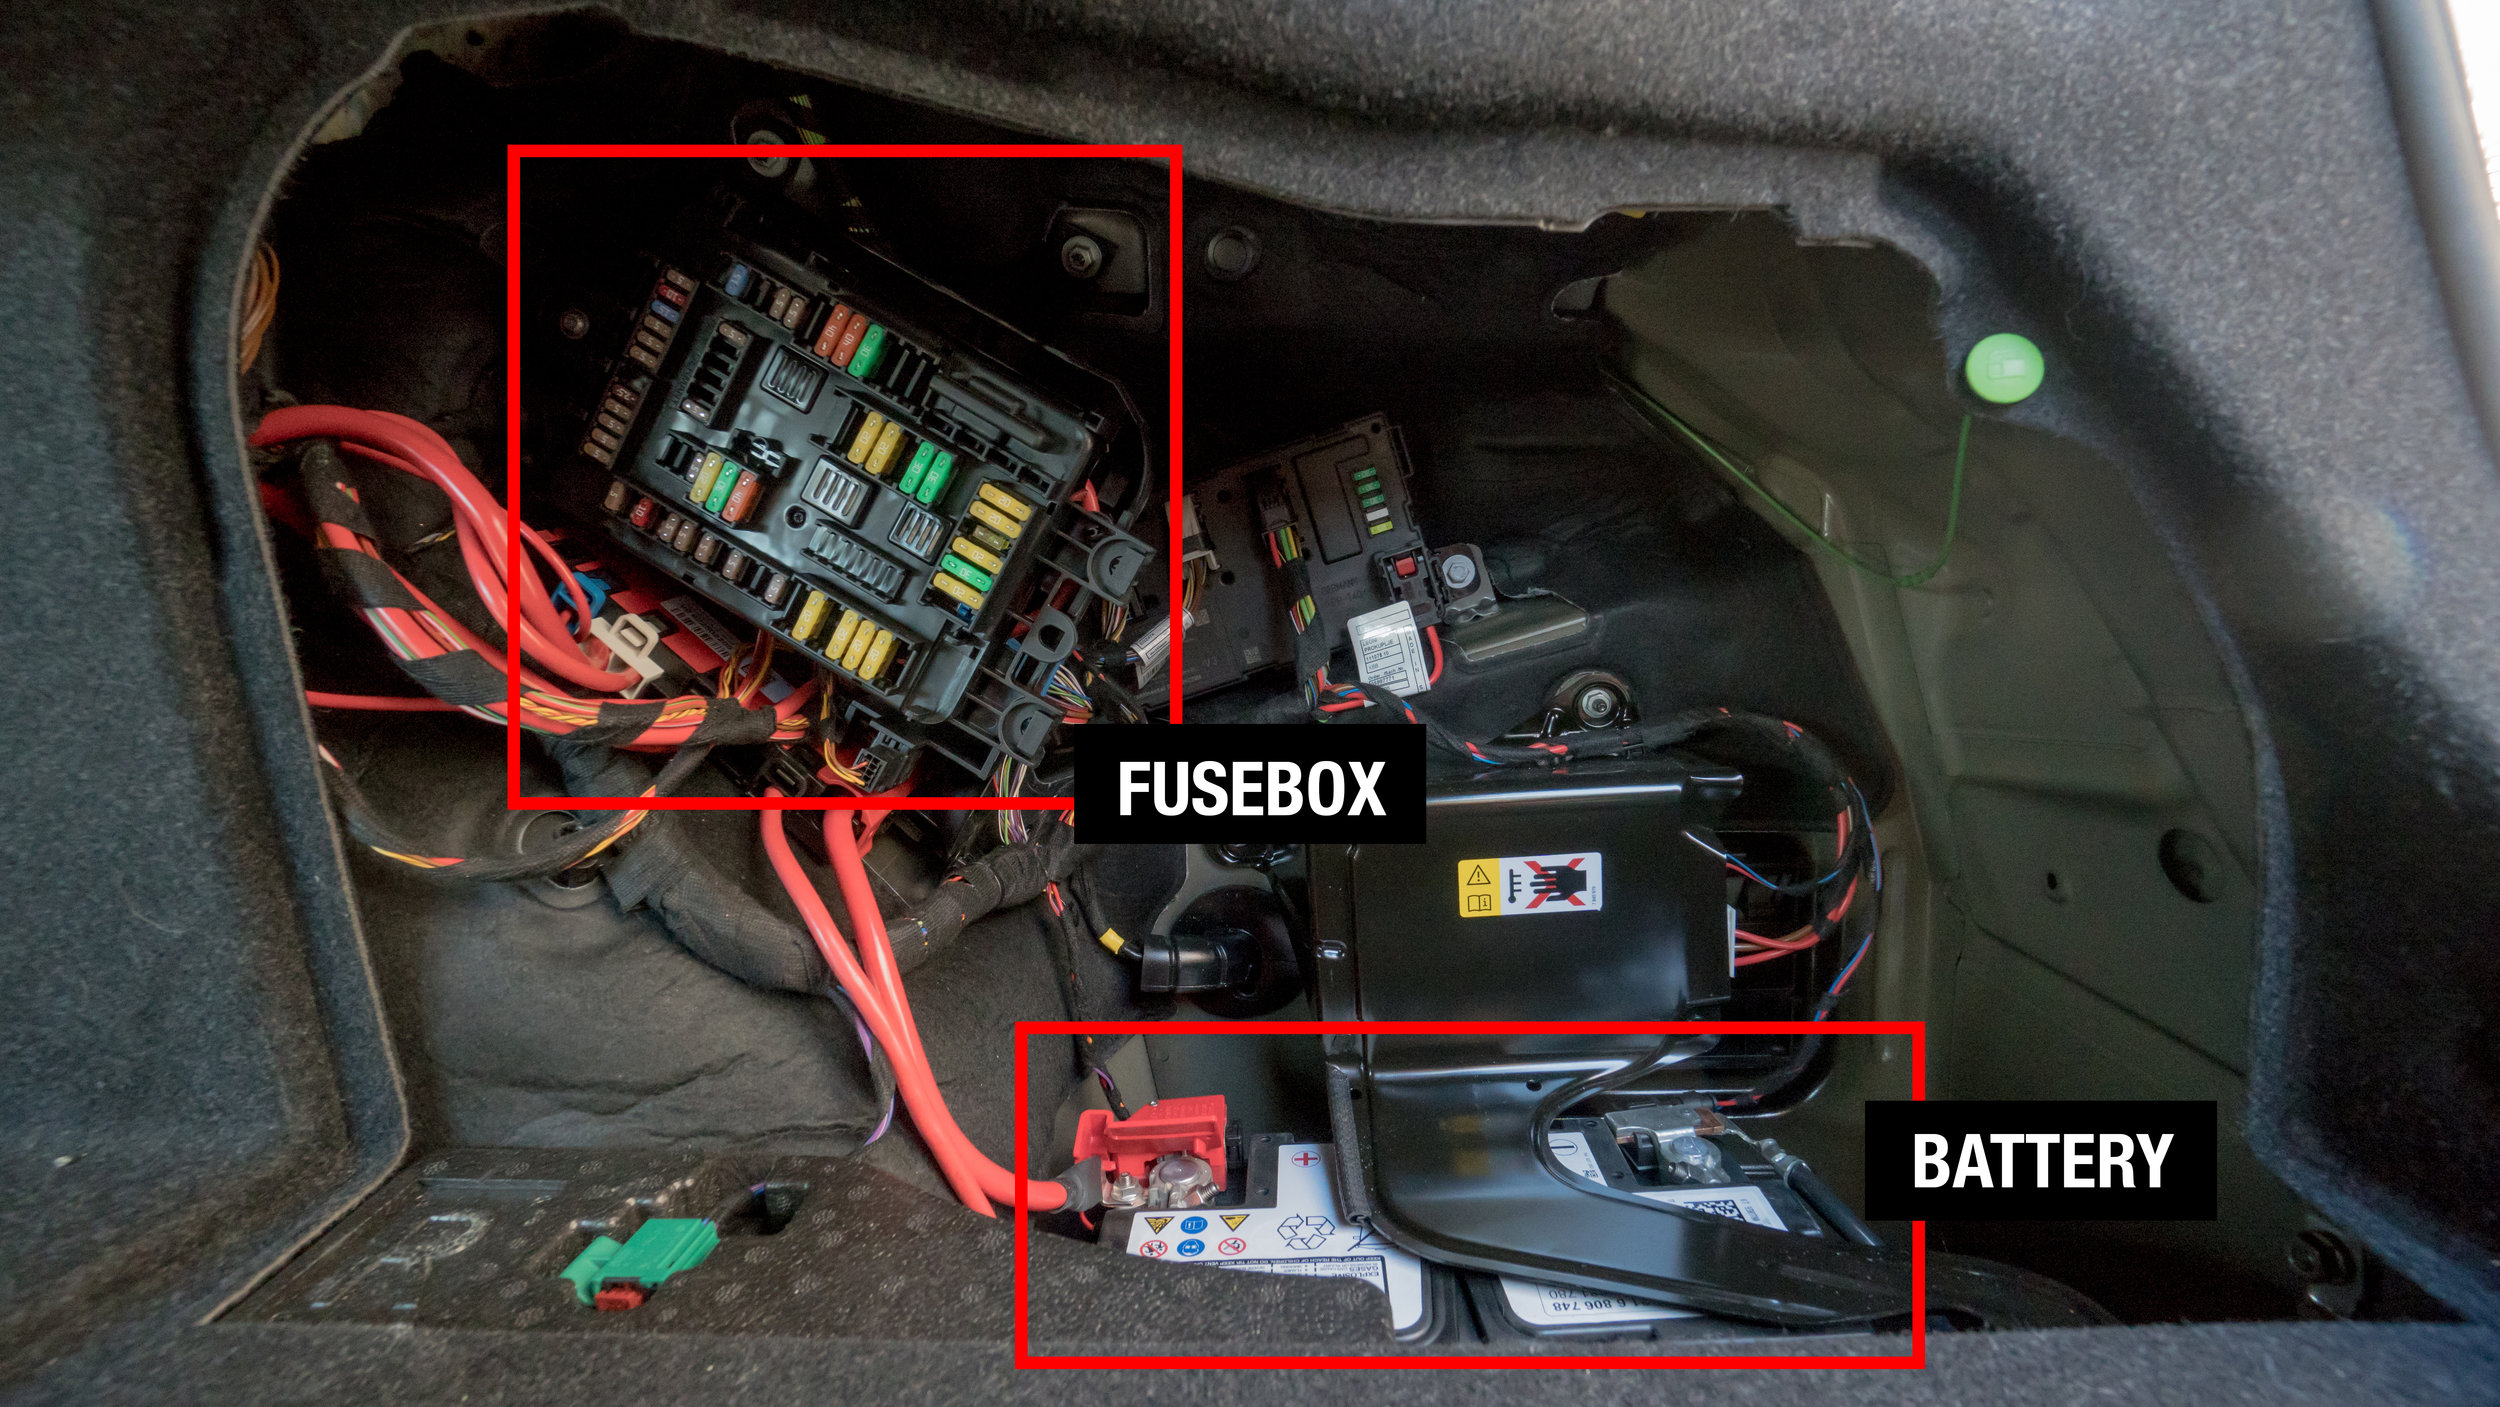 2017 BMW f30 3-series 330e Fuse box and Battery Location